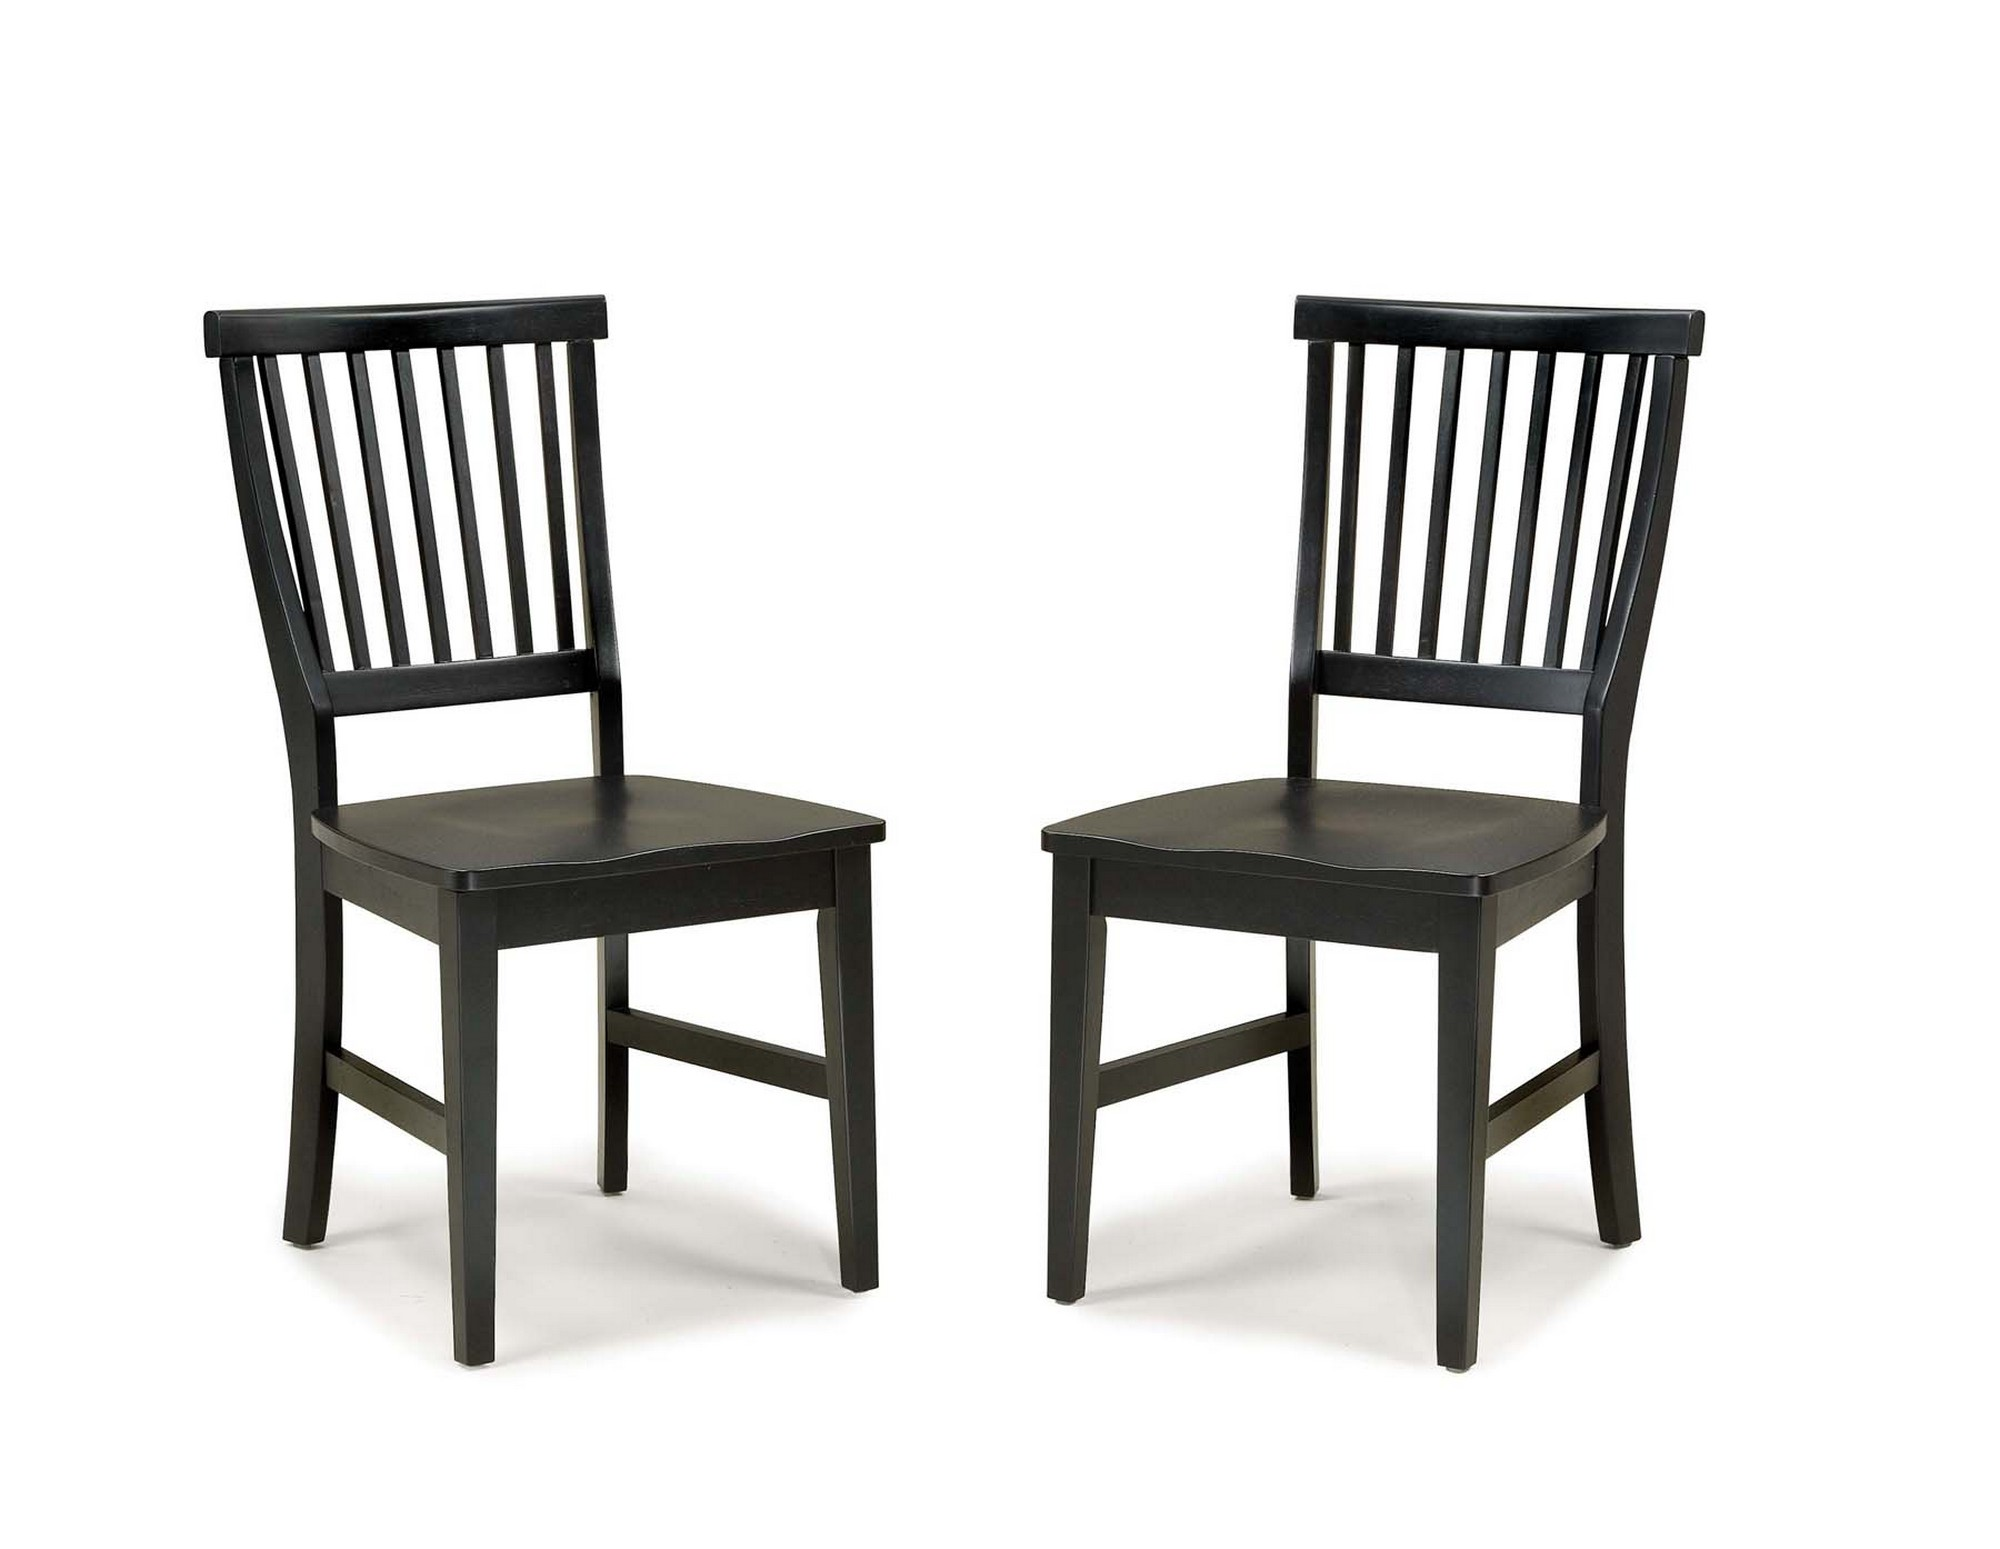 Lloyd Set of 2 Side Chairs by homestyles at Godby Home Furnishings